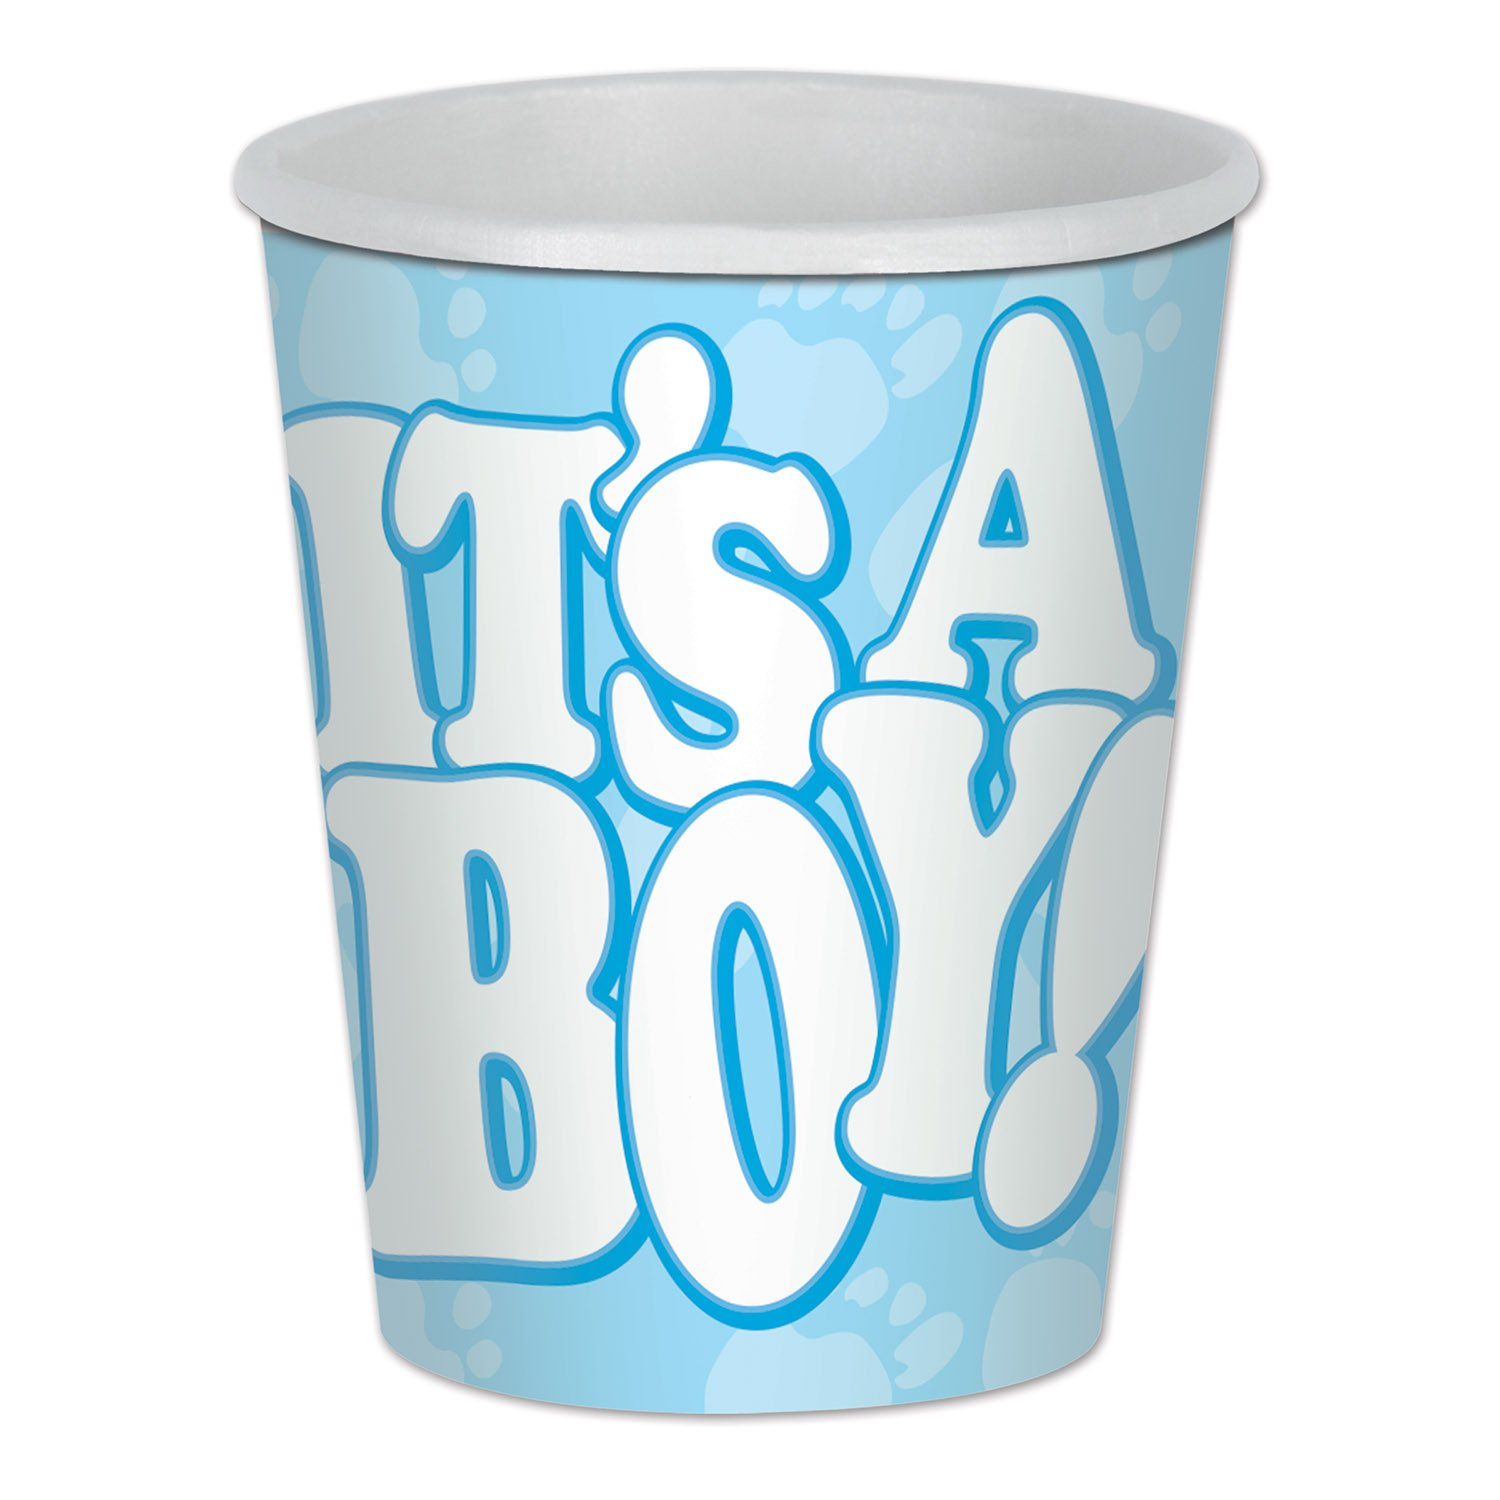 Beistle Its A Boy Beverage Cups 9 Ounce